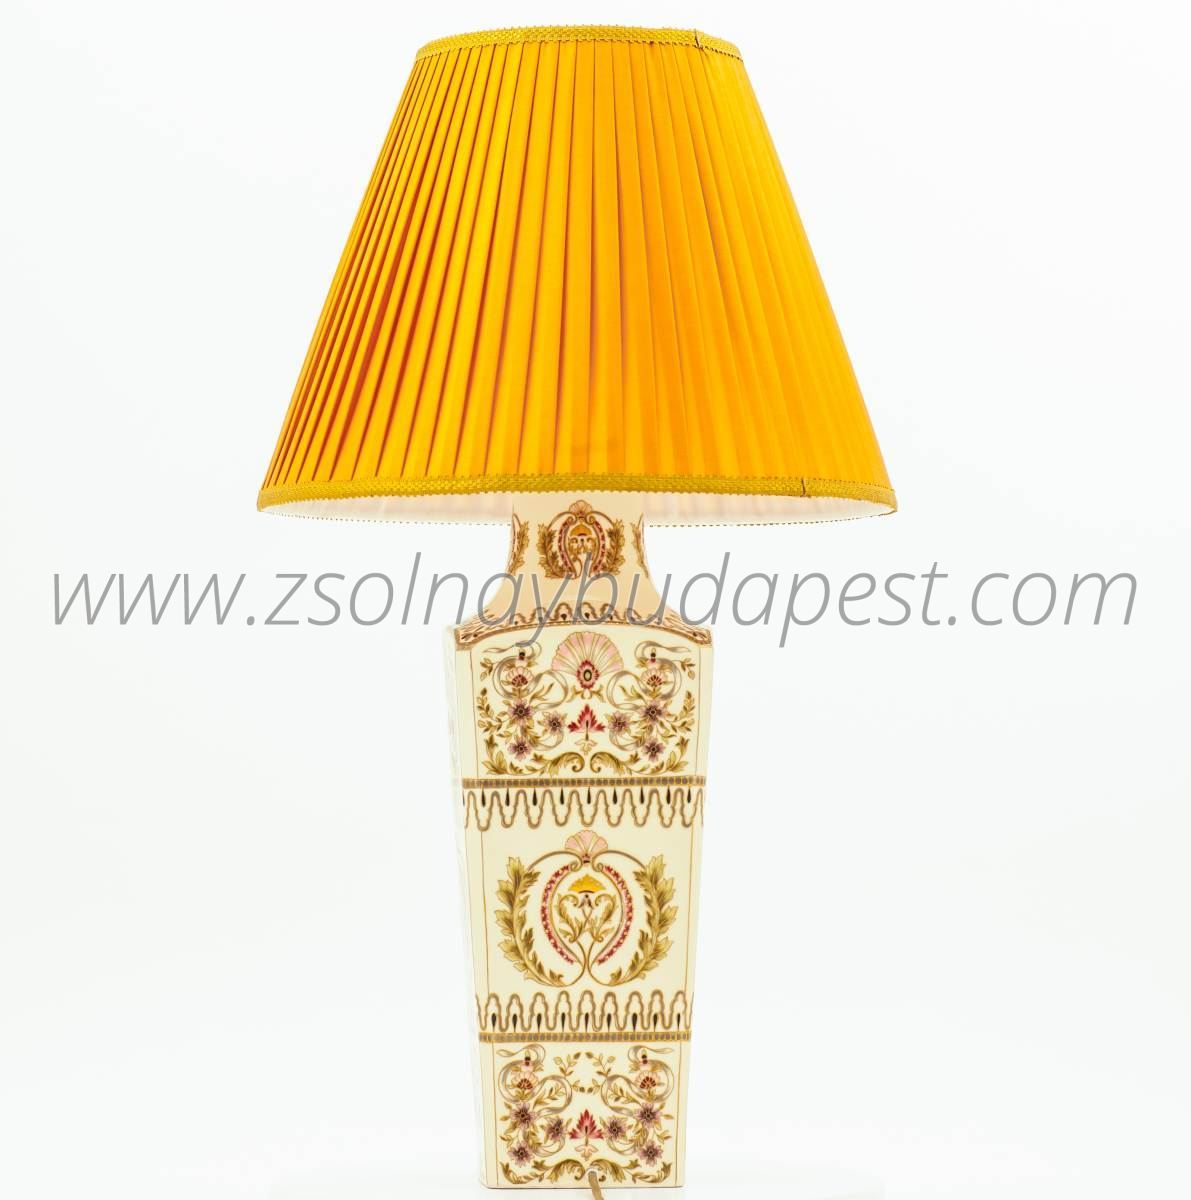 One of a kind  Imperial lamp